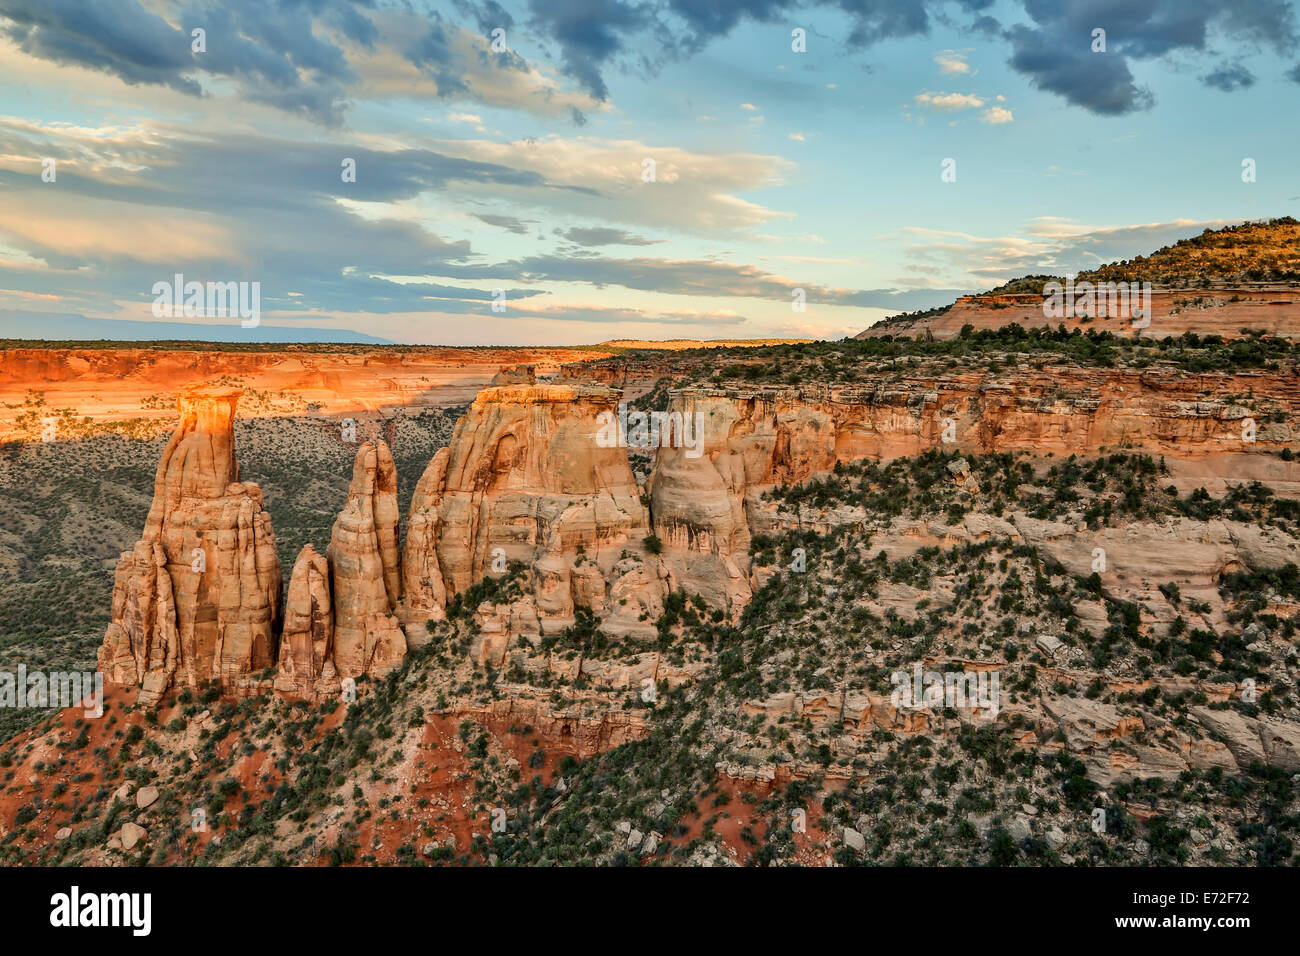 Sandstone monuments and formations, Colorado National Monument, Grand Junction, Colorado USA Stock Photo